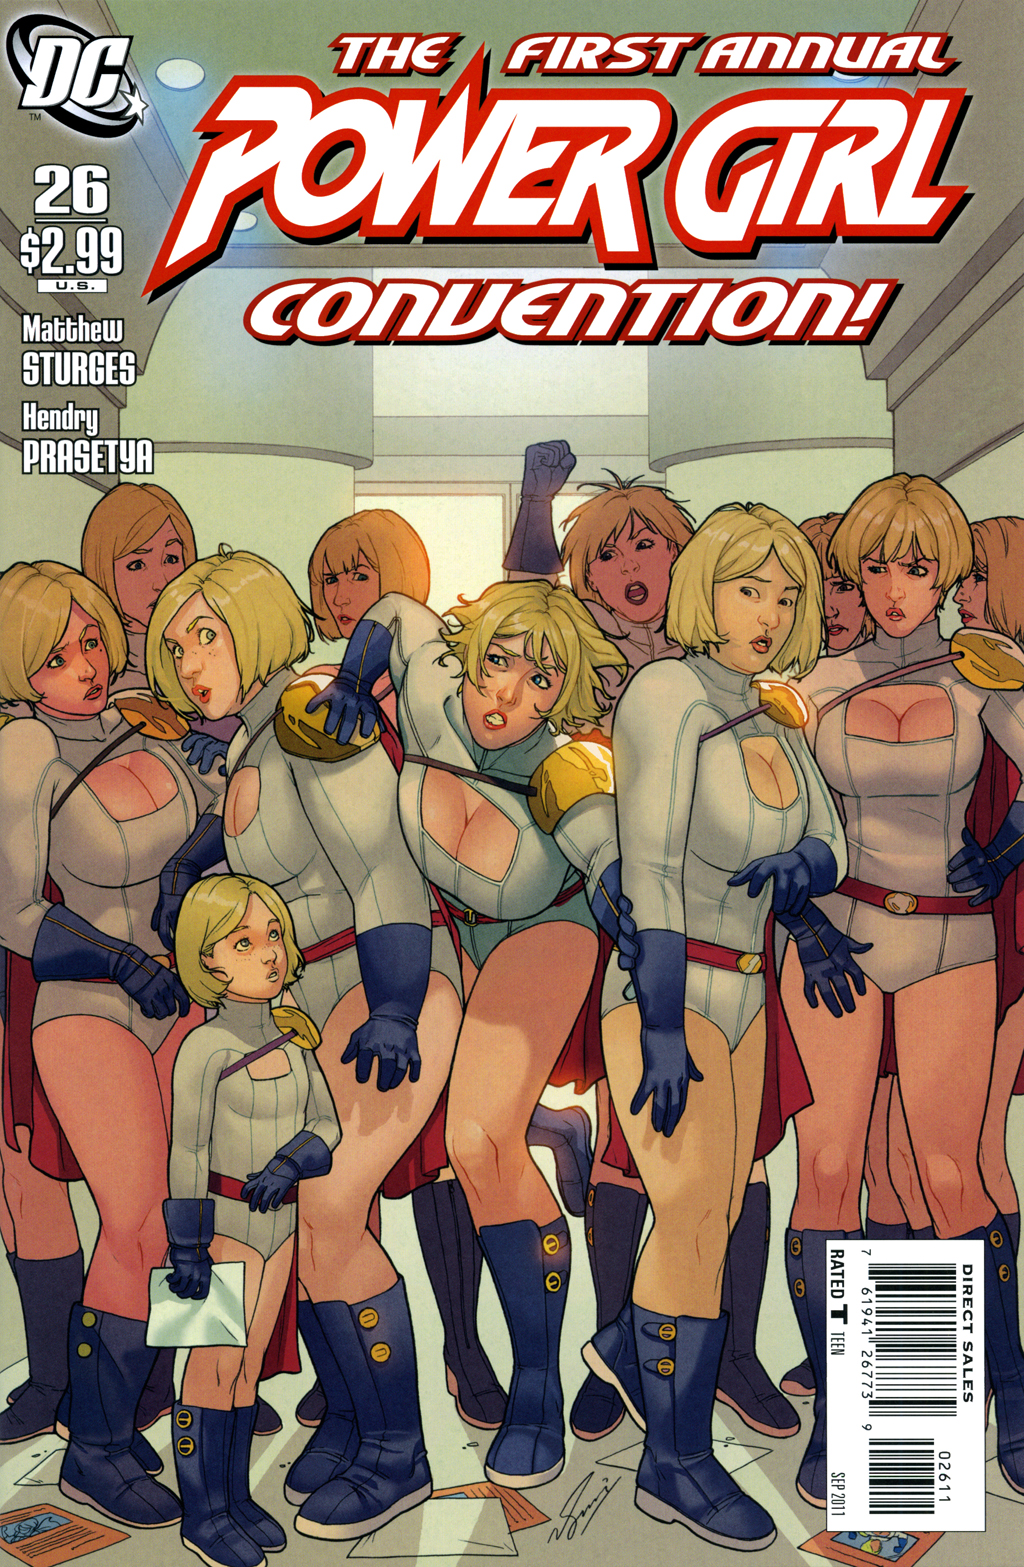 Review of Power Girl #26